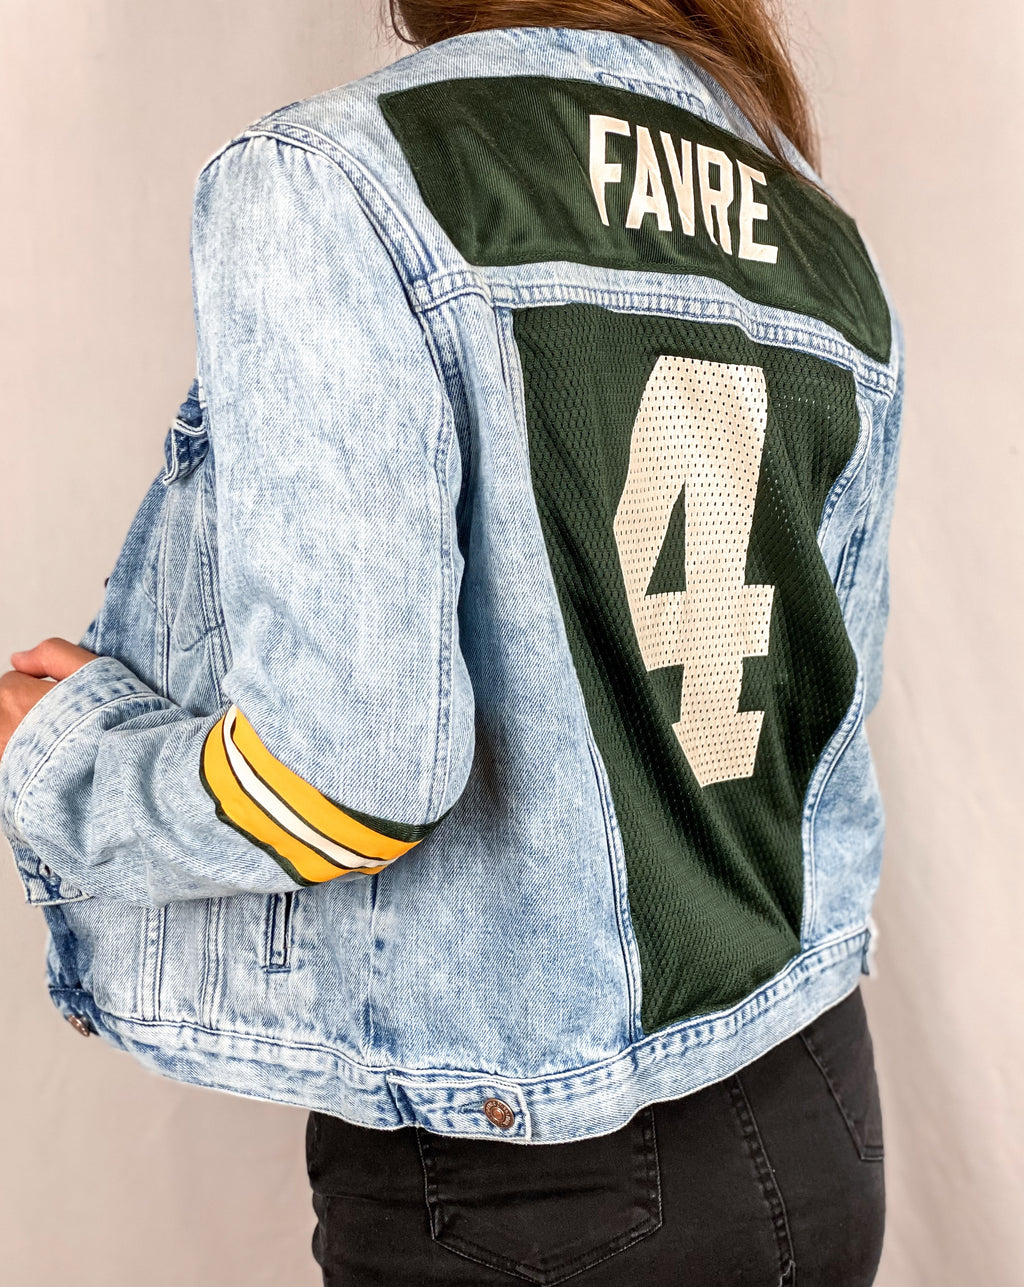 Green Bay Packers FAVRE Denim Jersey Jacket